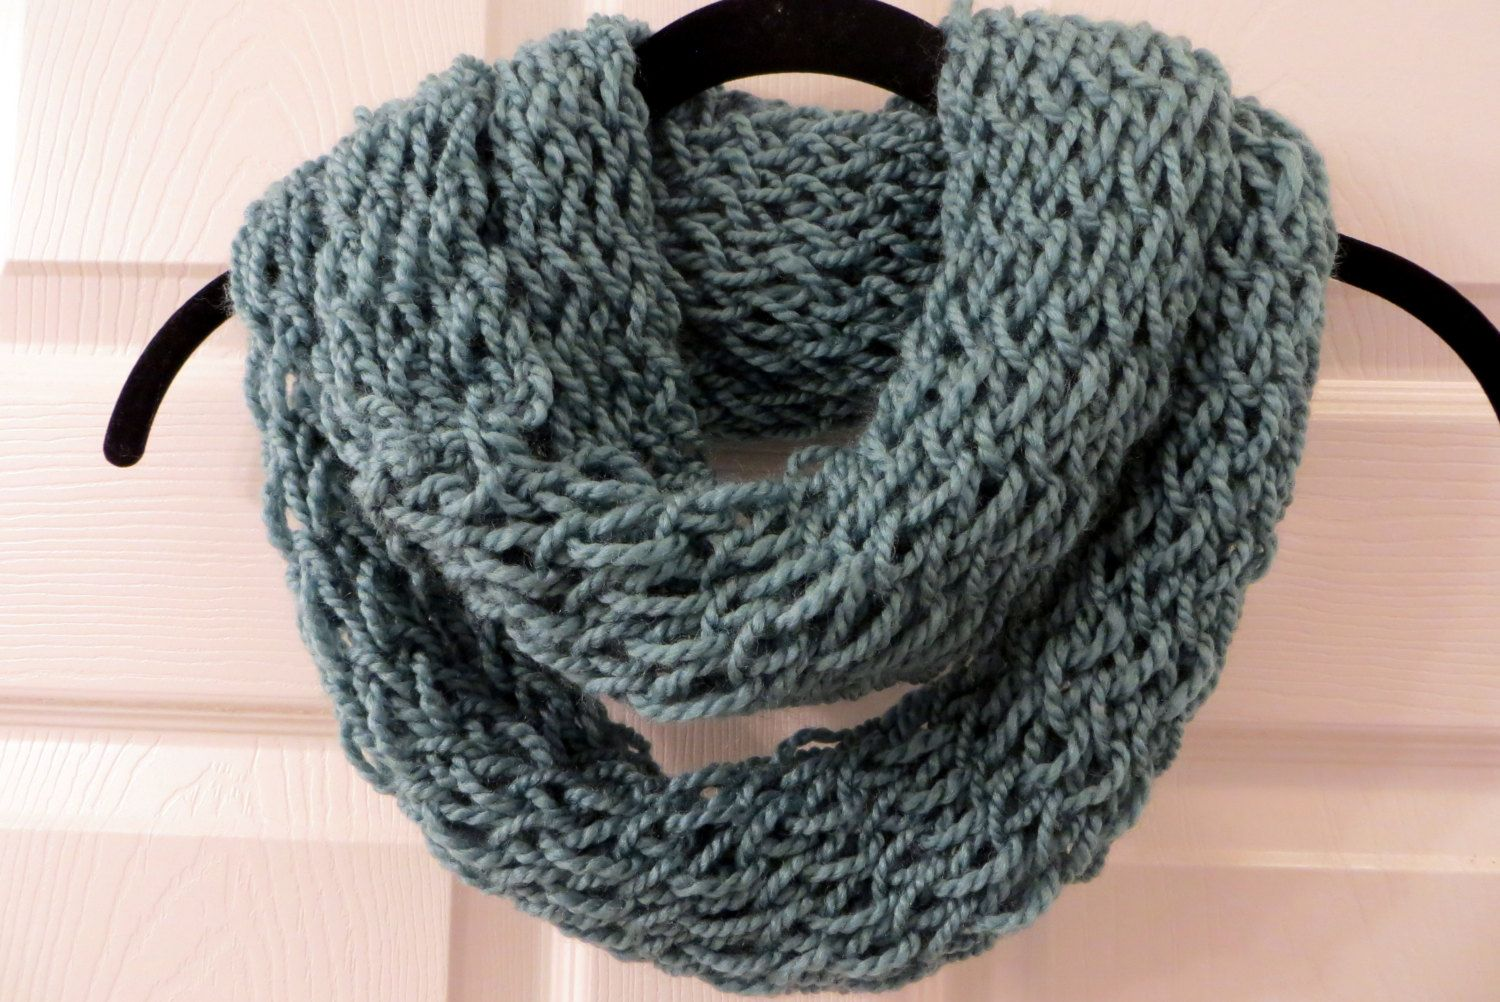 Handmade Teal Finger Knit Infinity Scarf by MistyMountainYarns on Etsy